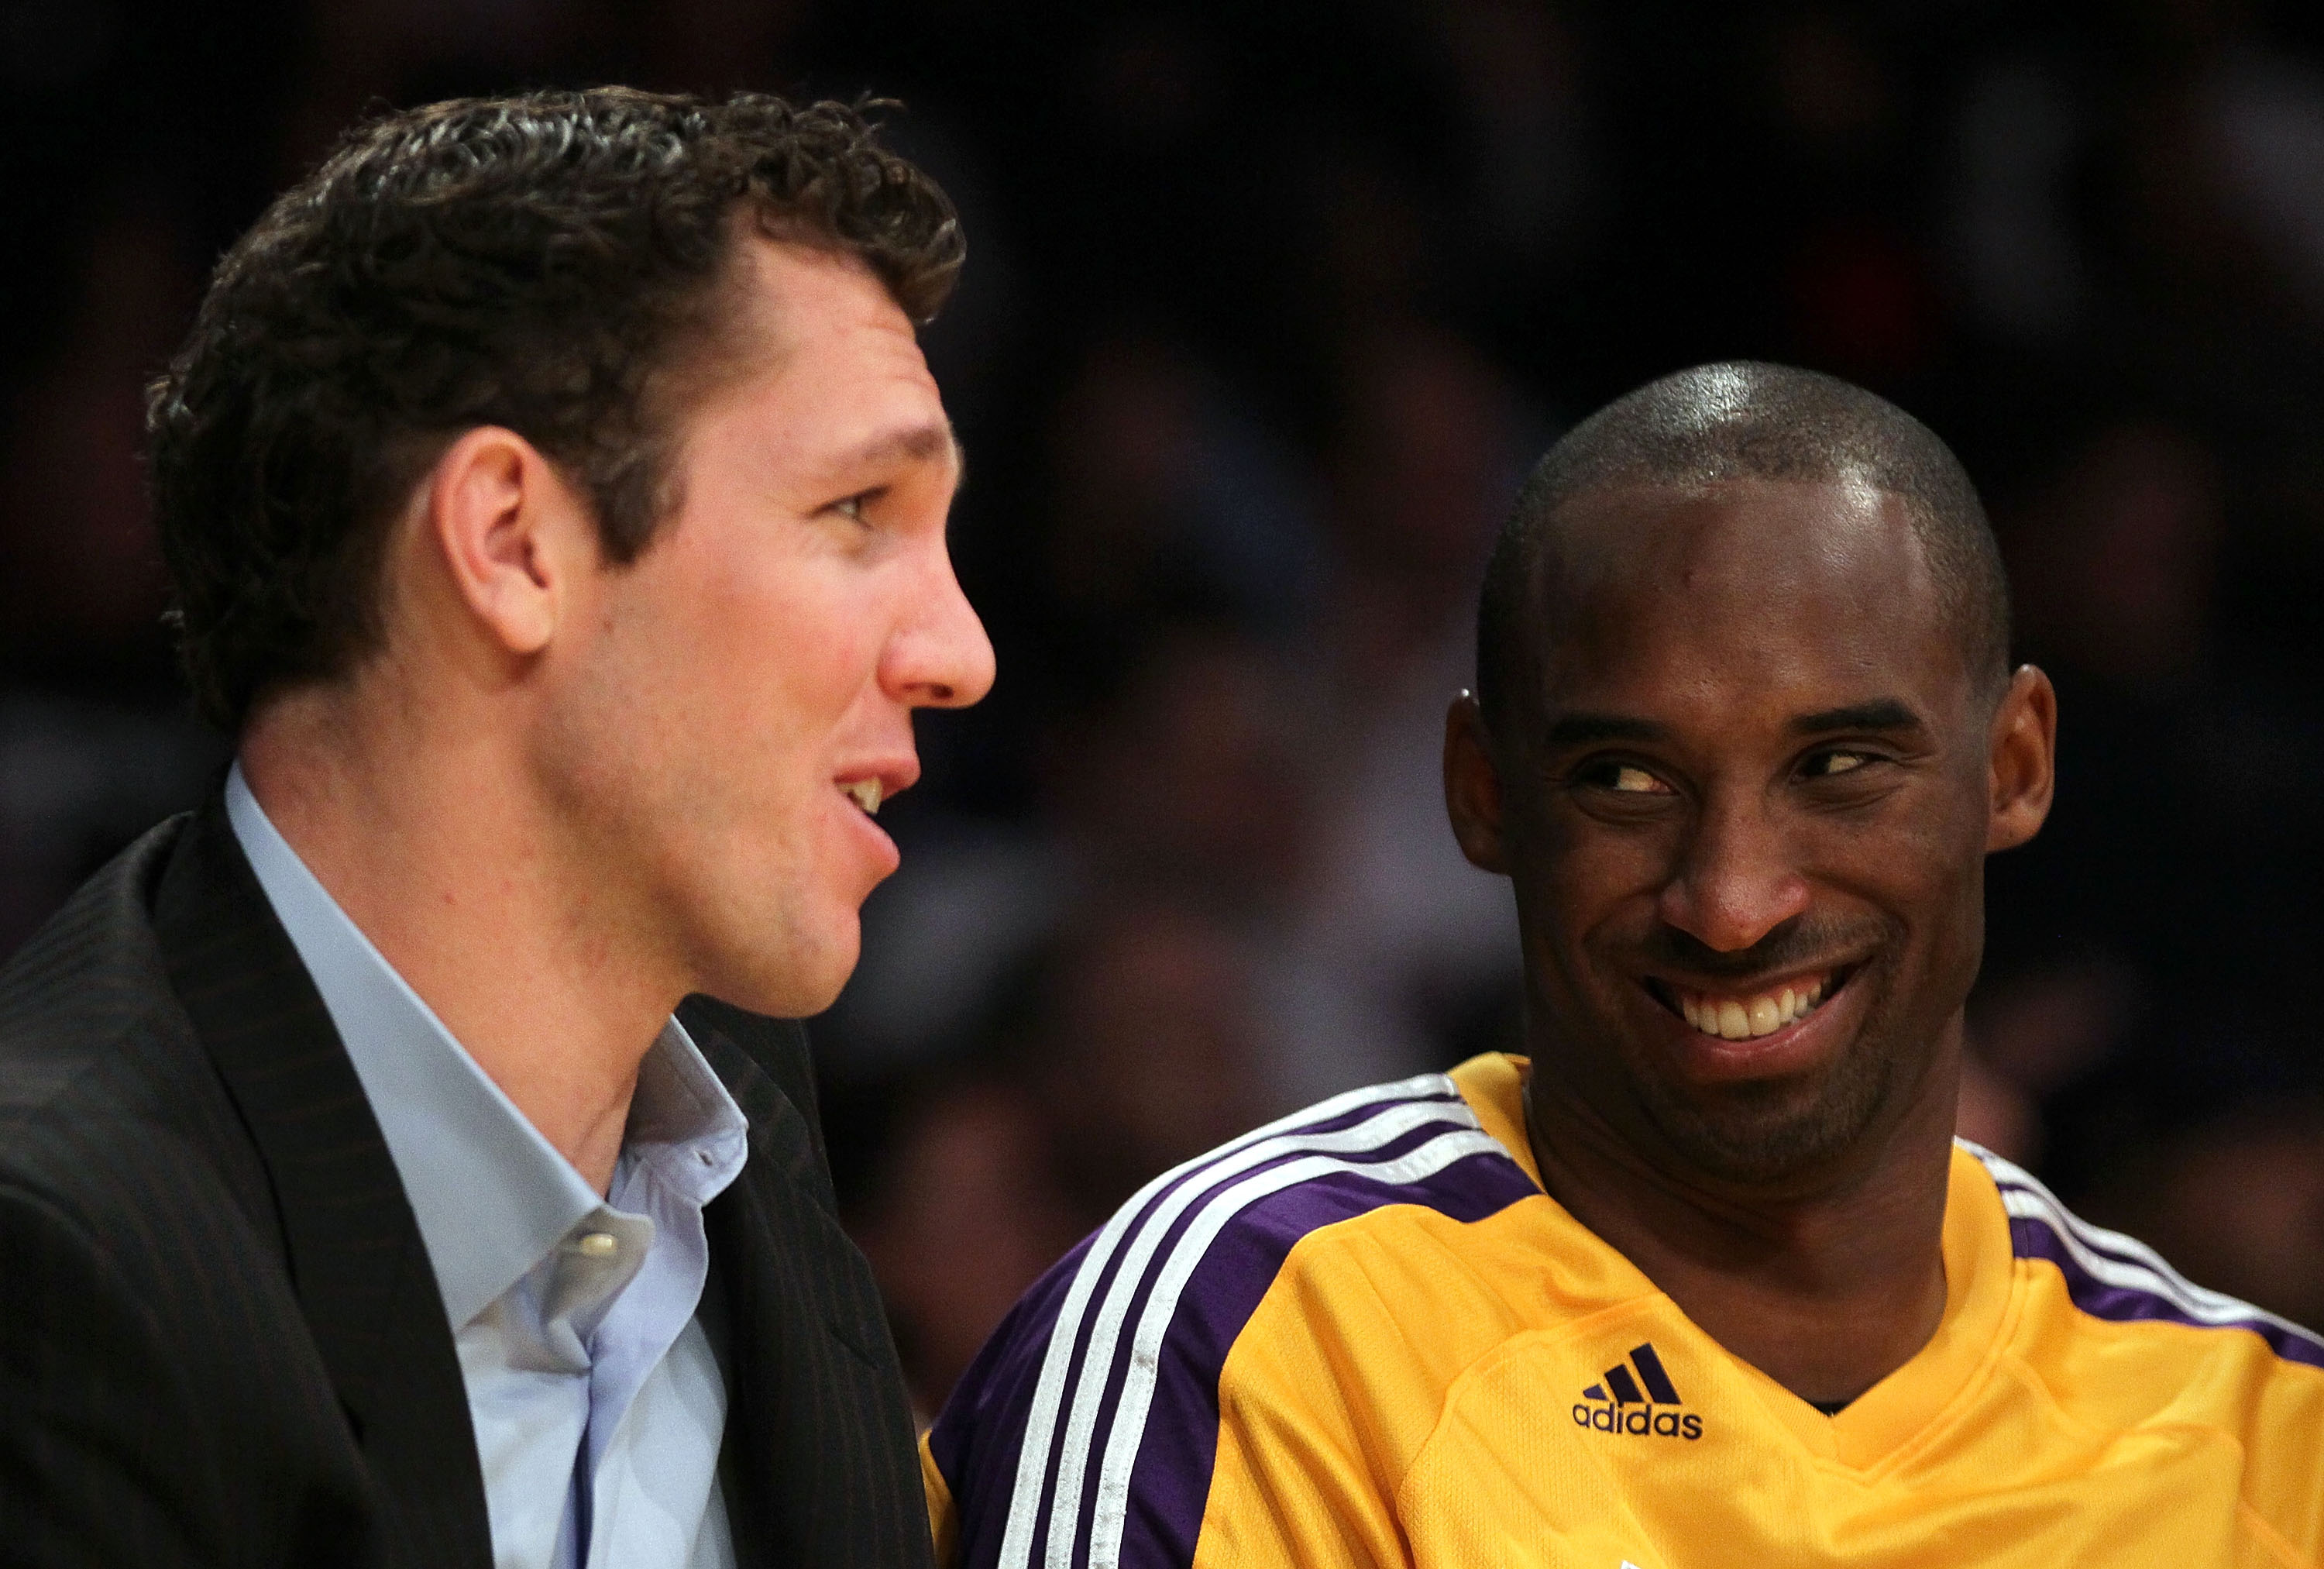 LOS ANGELES, CA - NOVEMBER 02:  Luke Walton #4 of the Los Angeles Lakers talks to teammate Kobe Bryant #24 during the game against the Memphis Grizzlies at Staples Center on November 2, 2010 in Los Angeles, California. The Lakers defeated the Grizzlies 12